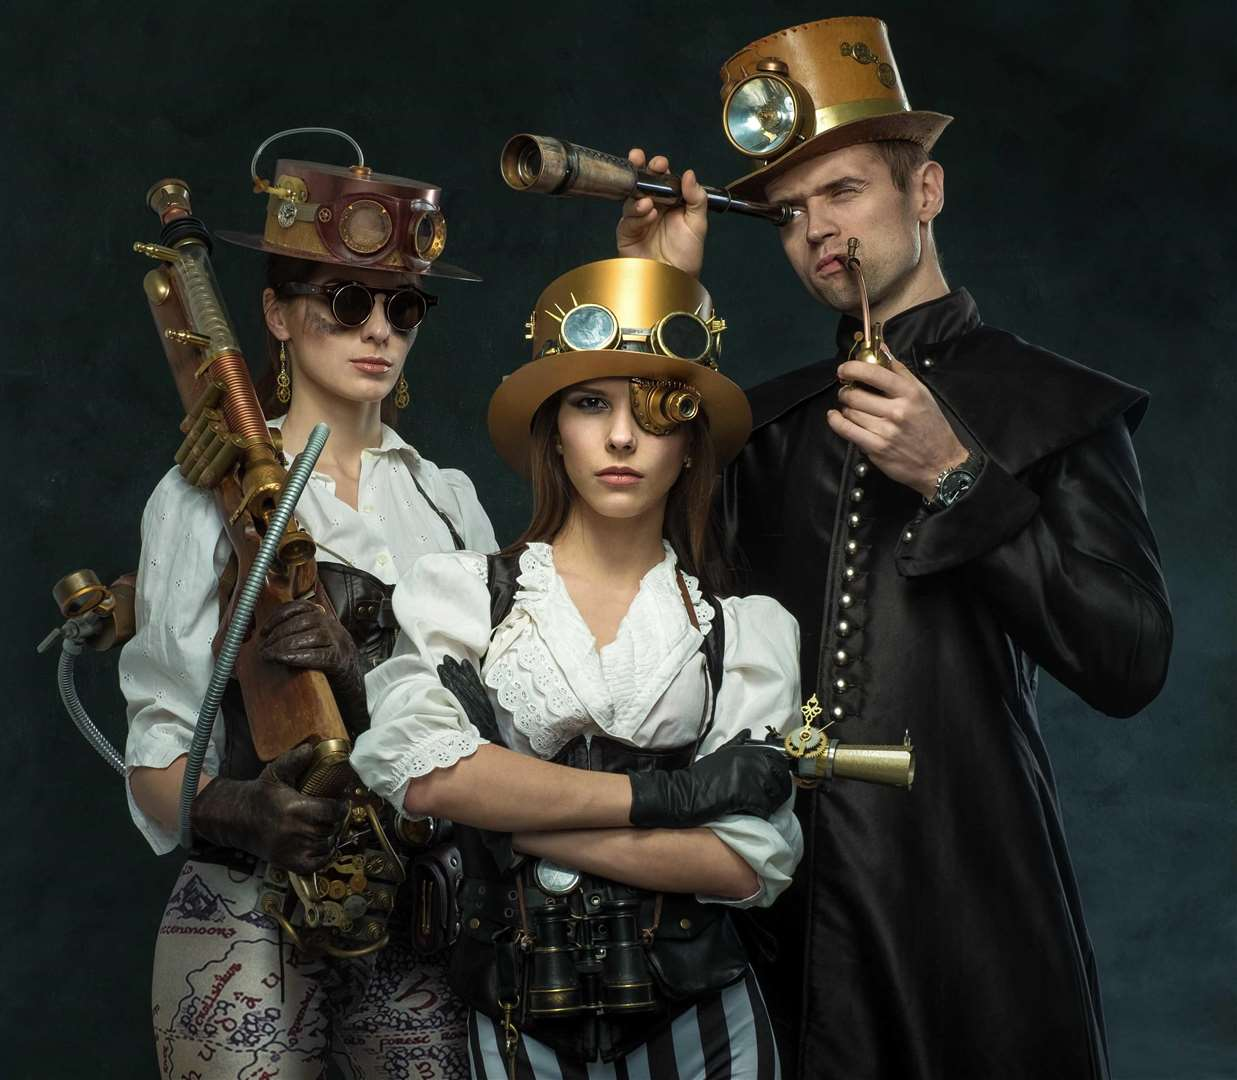 Immerse yourself in the world of steampunks at Maidstone Museum